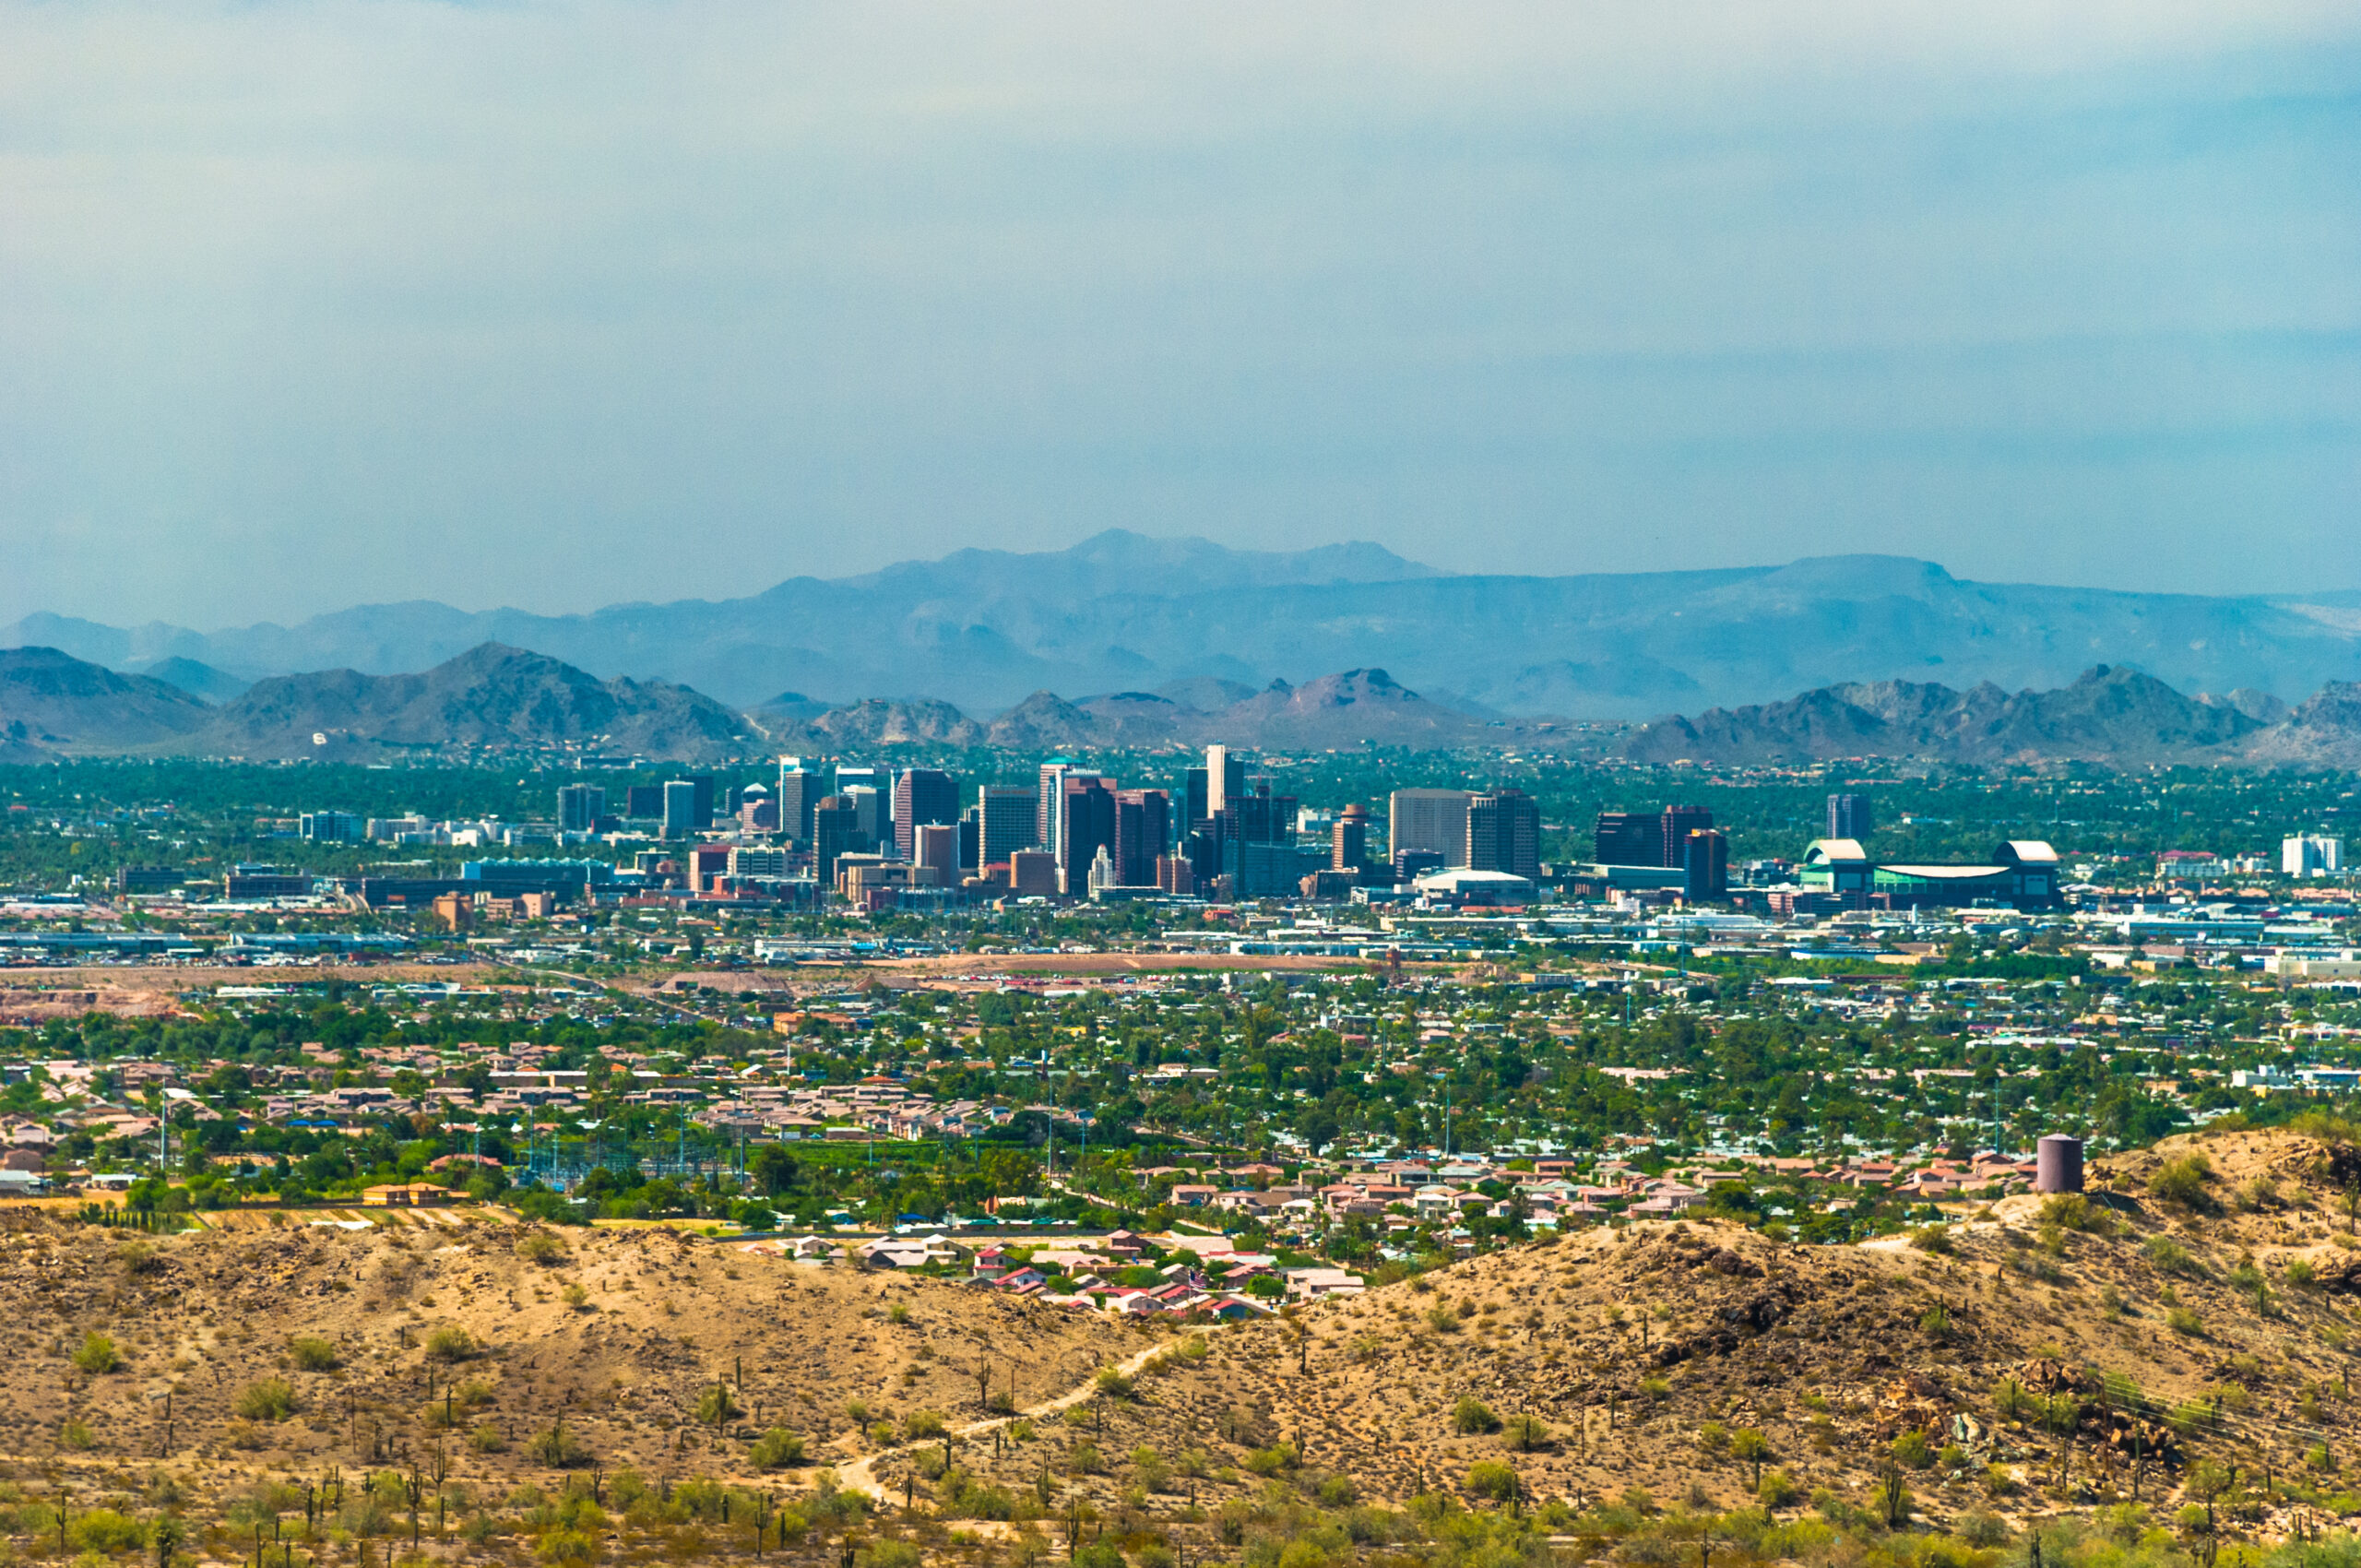 Downtown Phoenix aerial, with mountains in the far background and a desert mountain with Saguaro cactuses in the foreground.